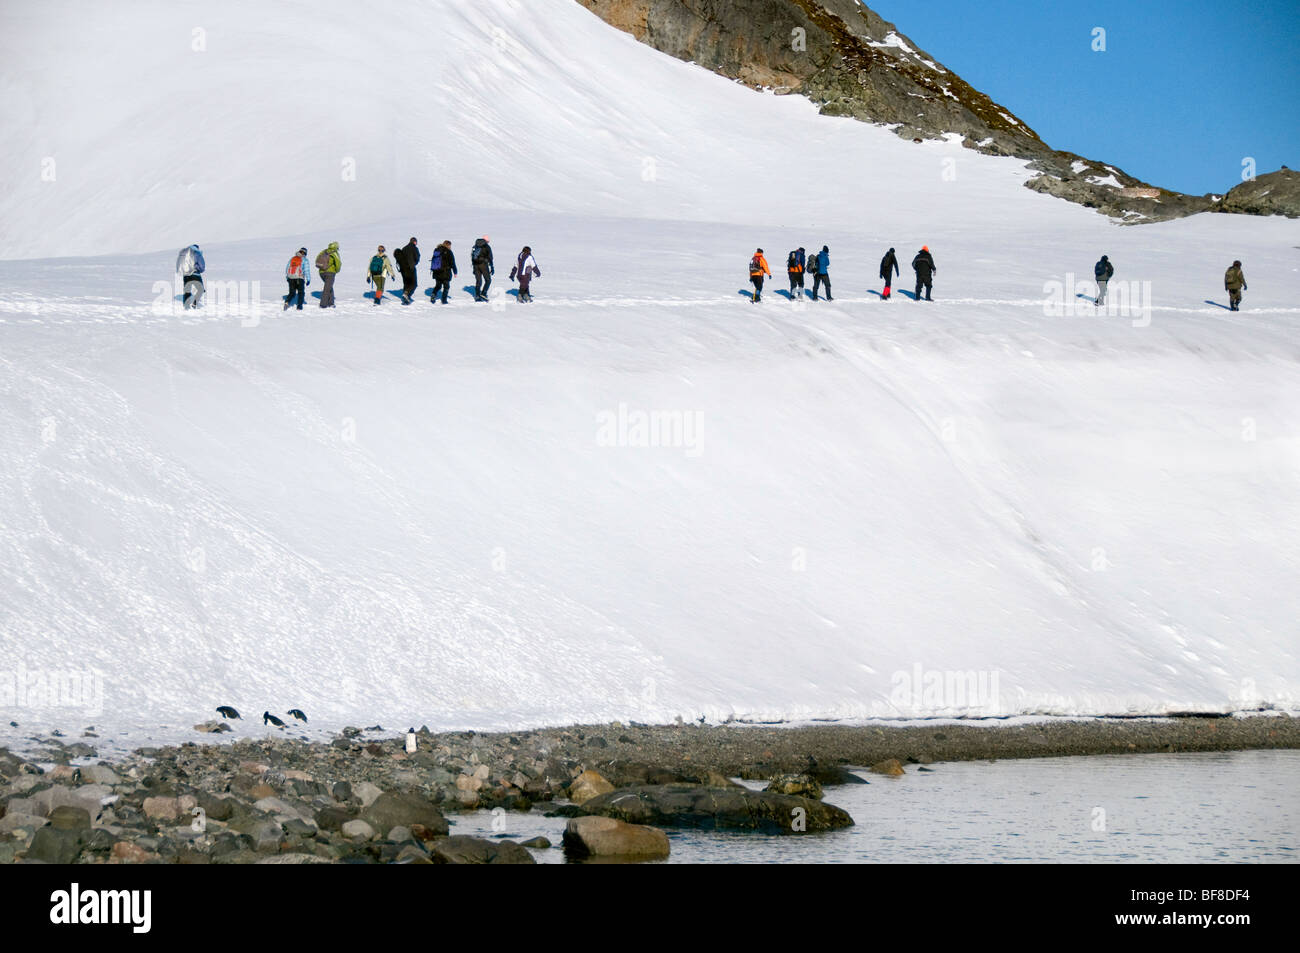 Members of an Antarctic expedition team making their way along a path at Paradise Bay - Stock Image